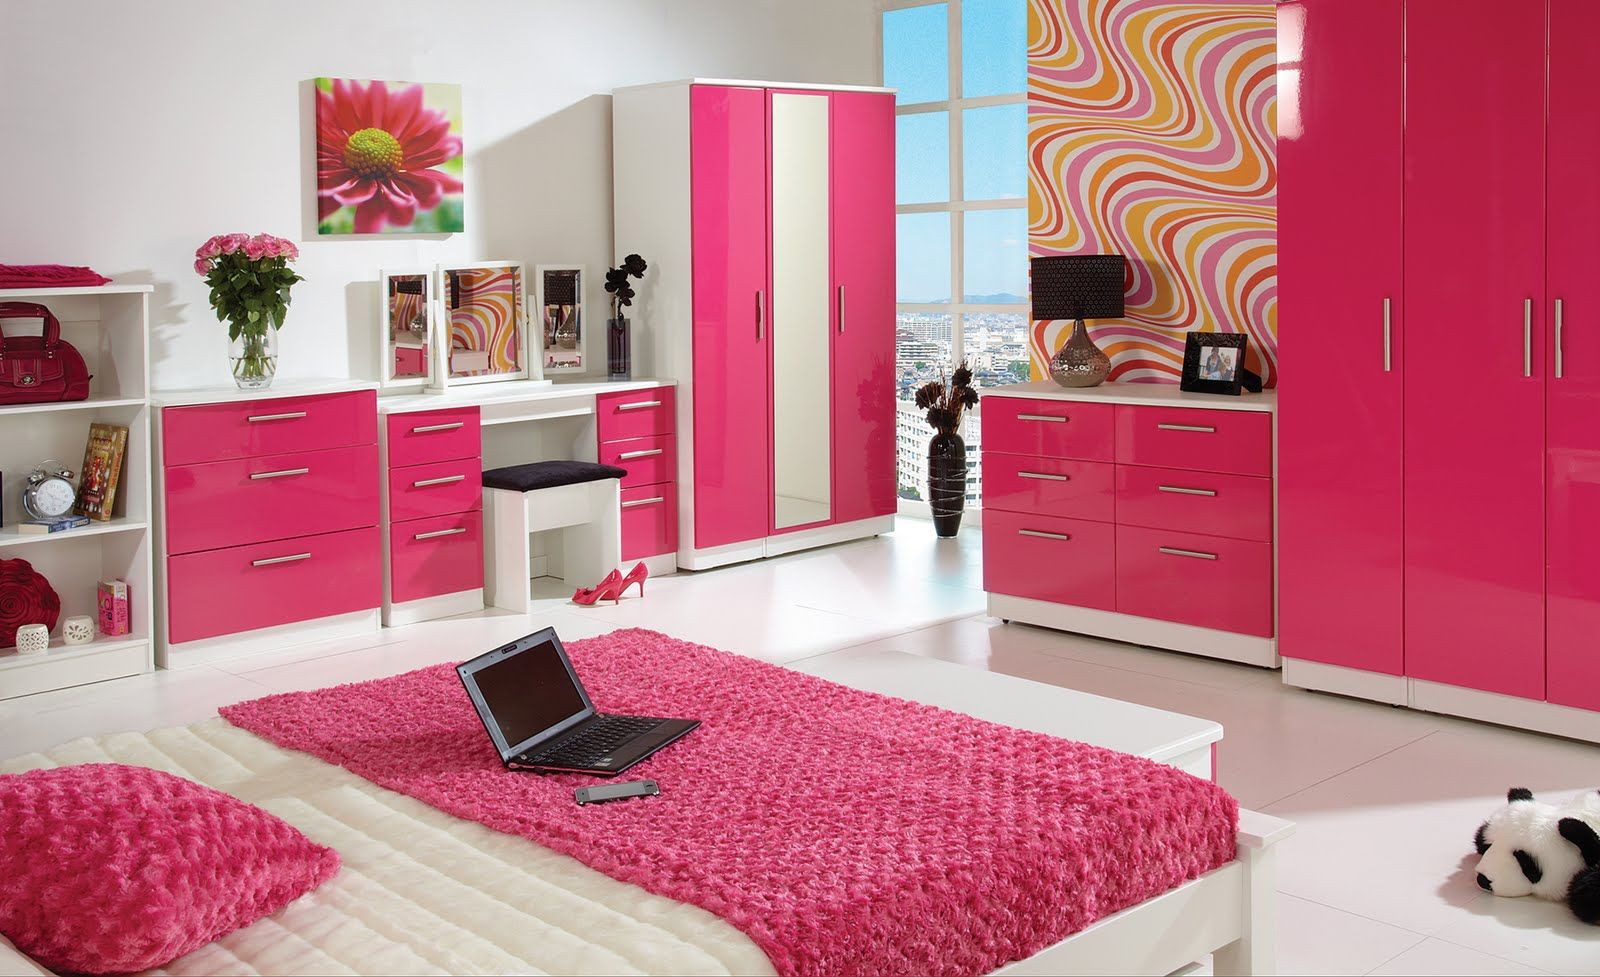 Design Ideas for Modern White Girls Bedroom with Pink Color Scheme Interior  Furniture Decorating and BeautifulDesign Ideas for Modern White Girls Bedroom with Pink Color Scheme  . Pink Bedroom Set. Home Design Ideas